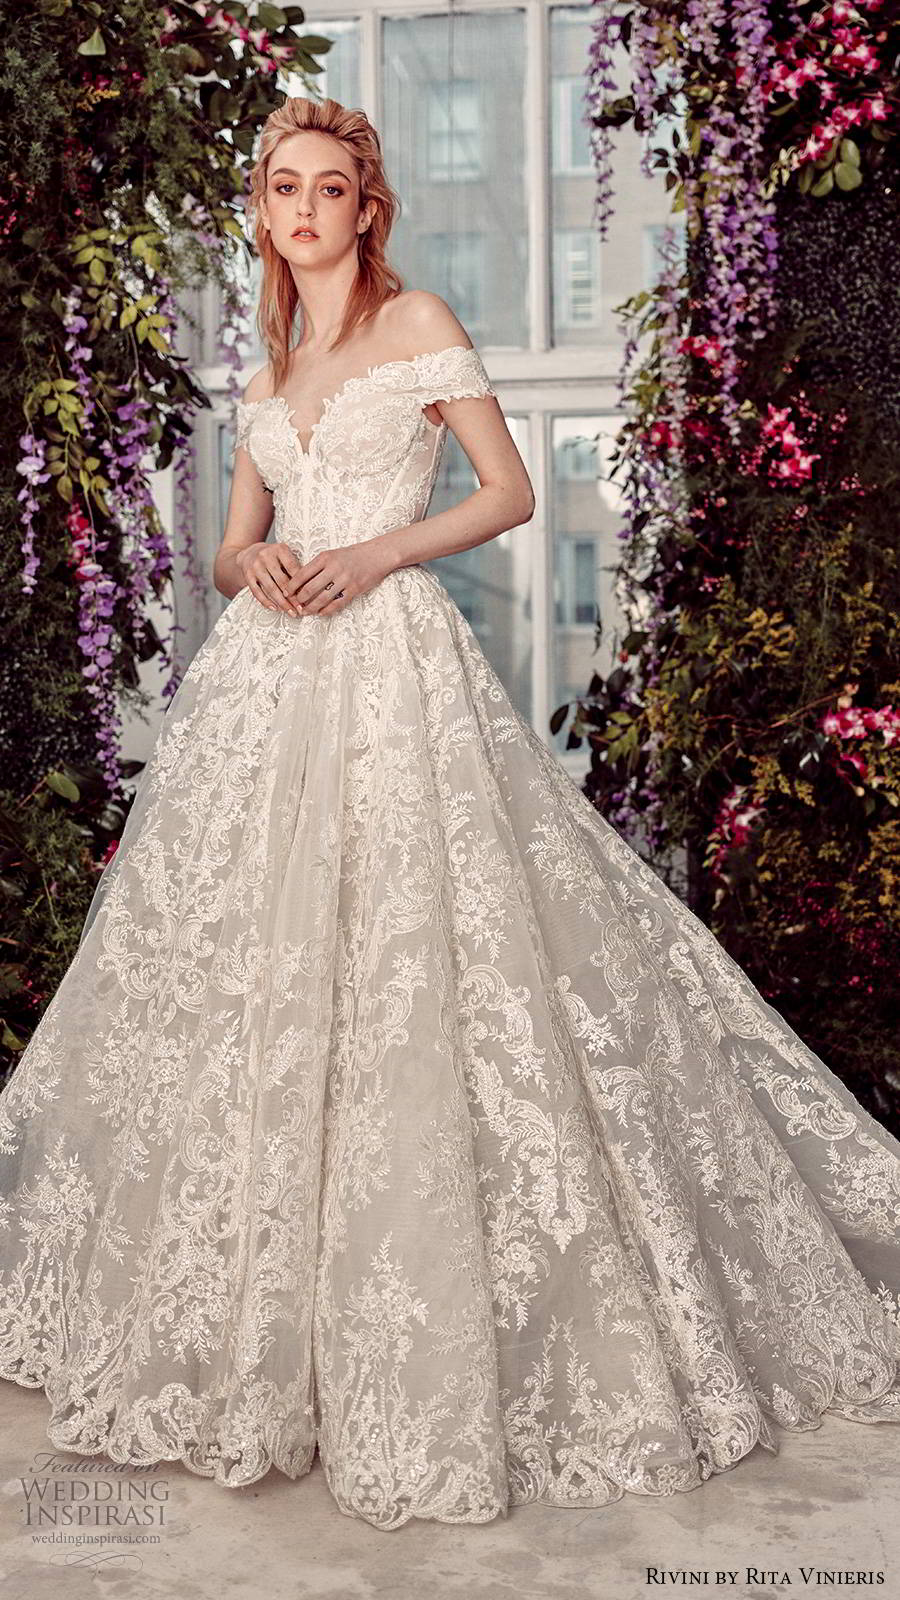 rivini by rita vinieris spring 2020 bridal off shoulder sweetheart neckline fully embellished lace elegant romantic a line ball gown wedding dress chapel train (5) mv